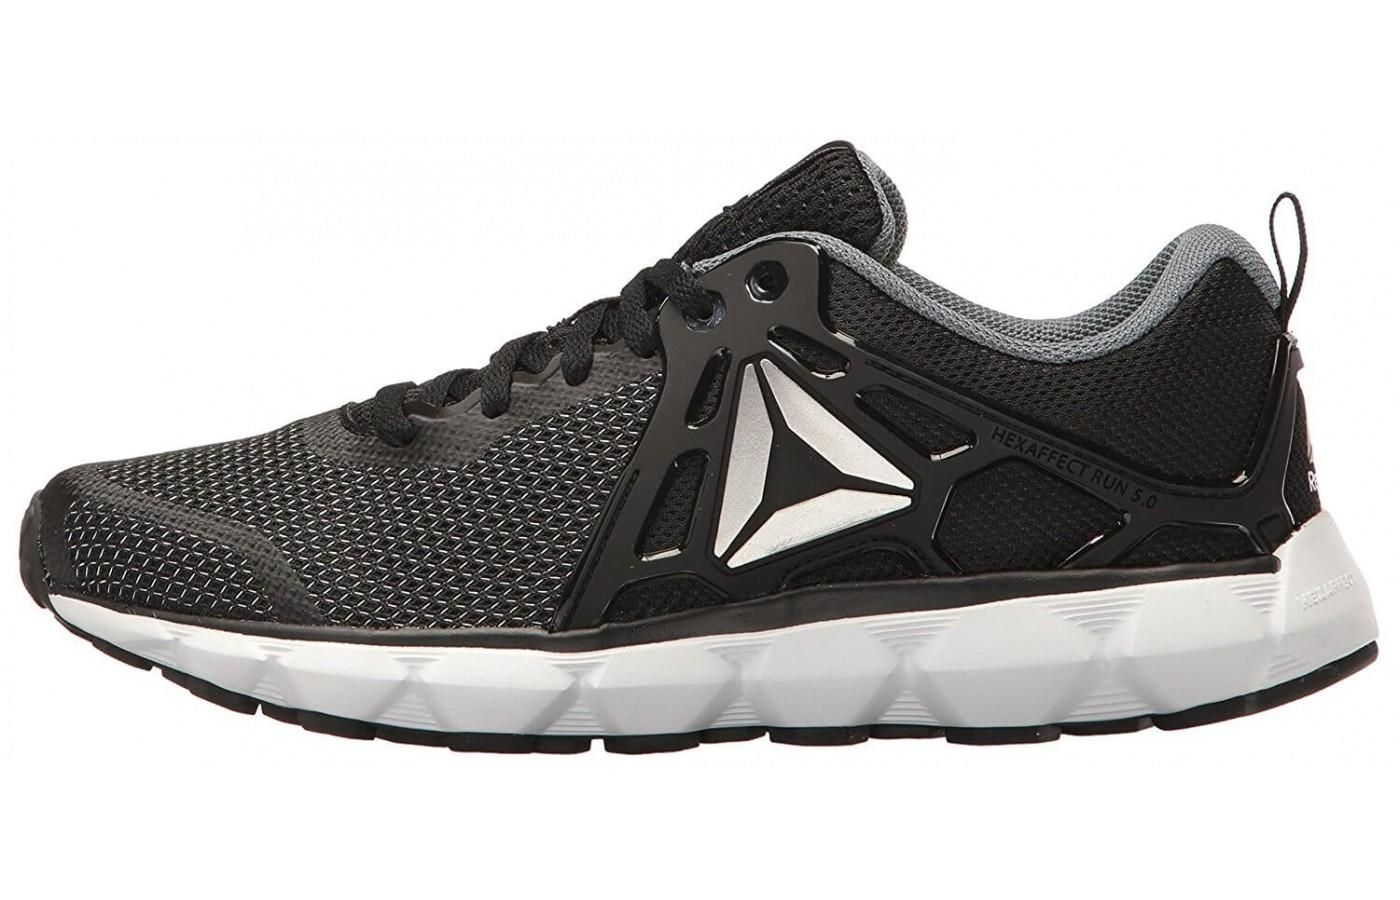 The Reebok Hexaffect Run 5.0 is lightweight